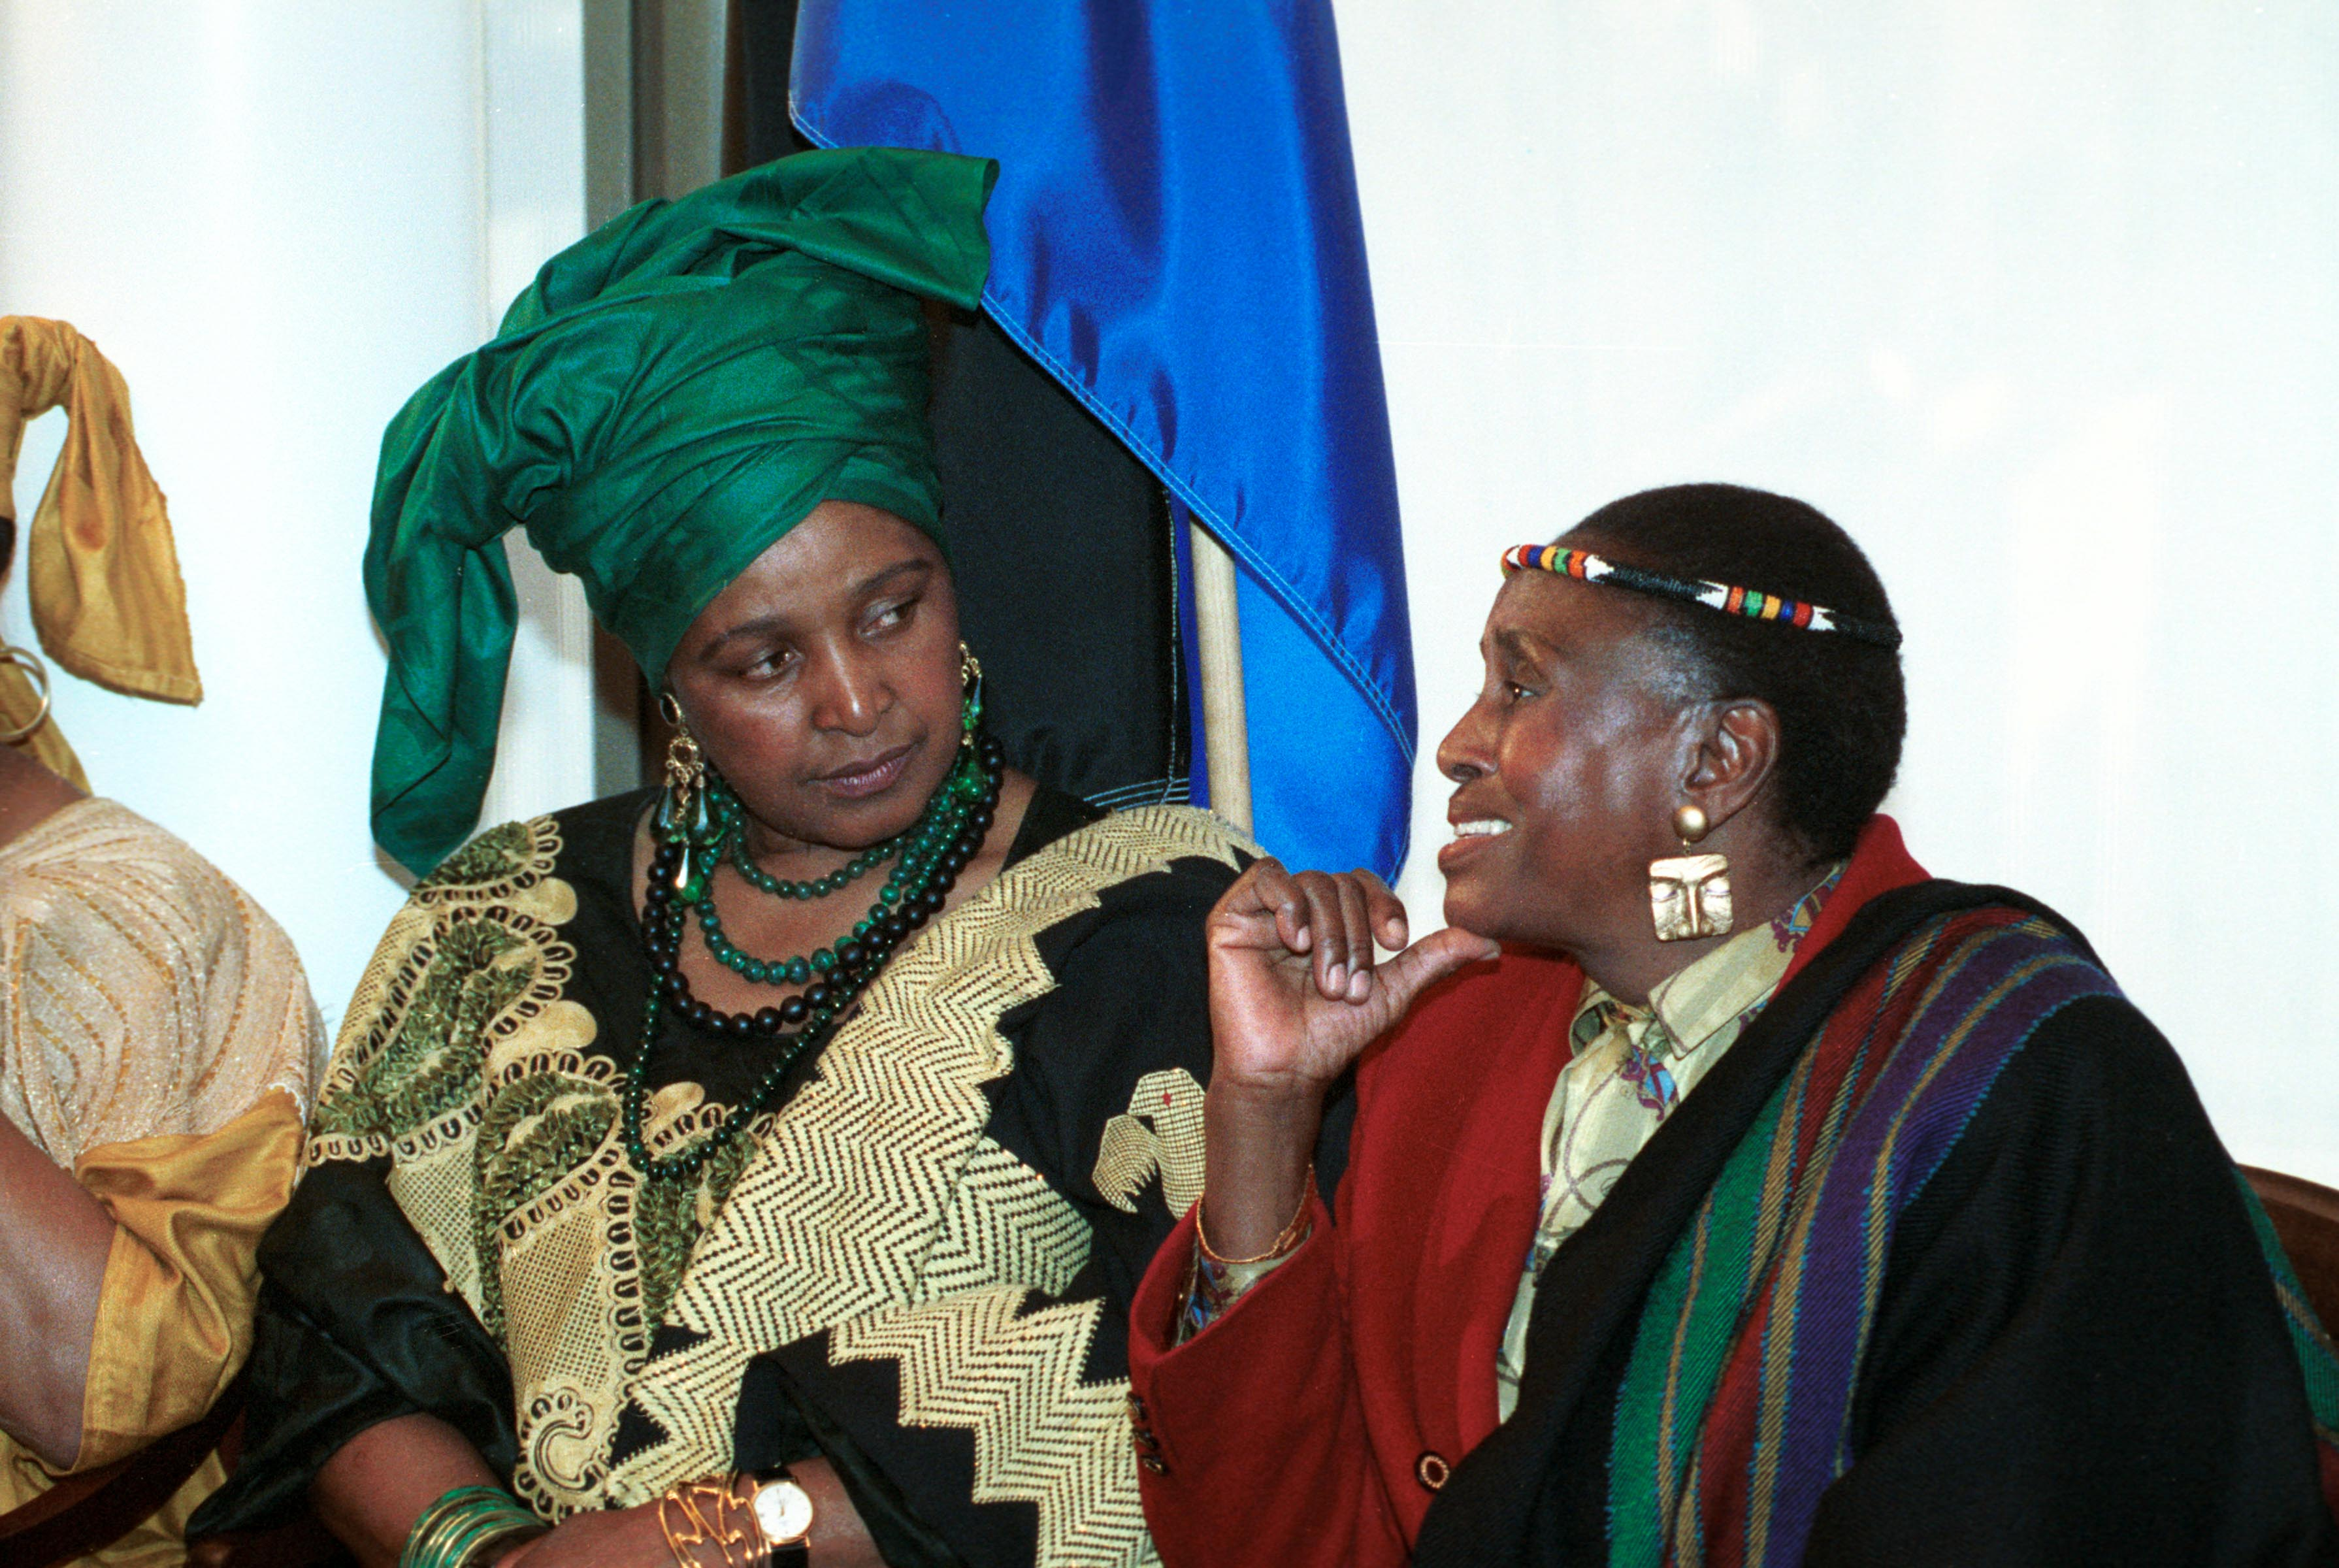 6 November 1991: Winnie Madikizela-Mandela talking to singer Miriam Makeba at the announcement of a three-day concert and summit to aid African children.